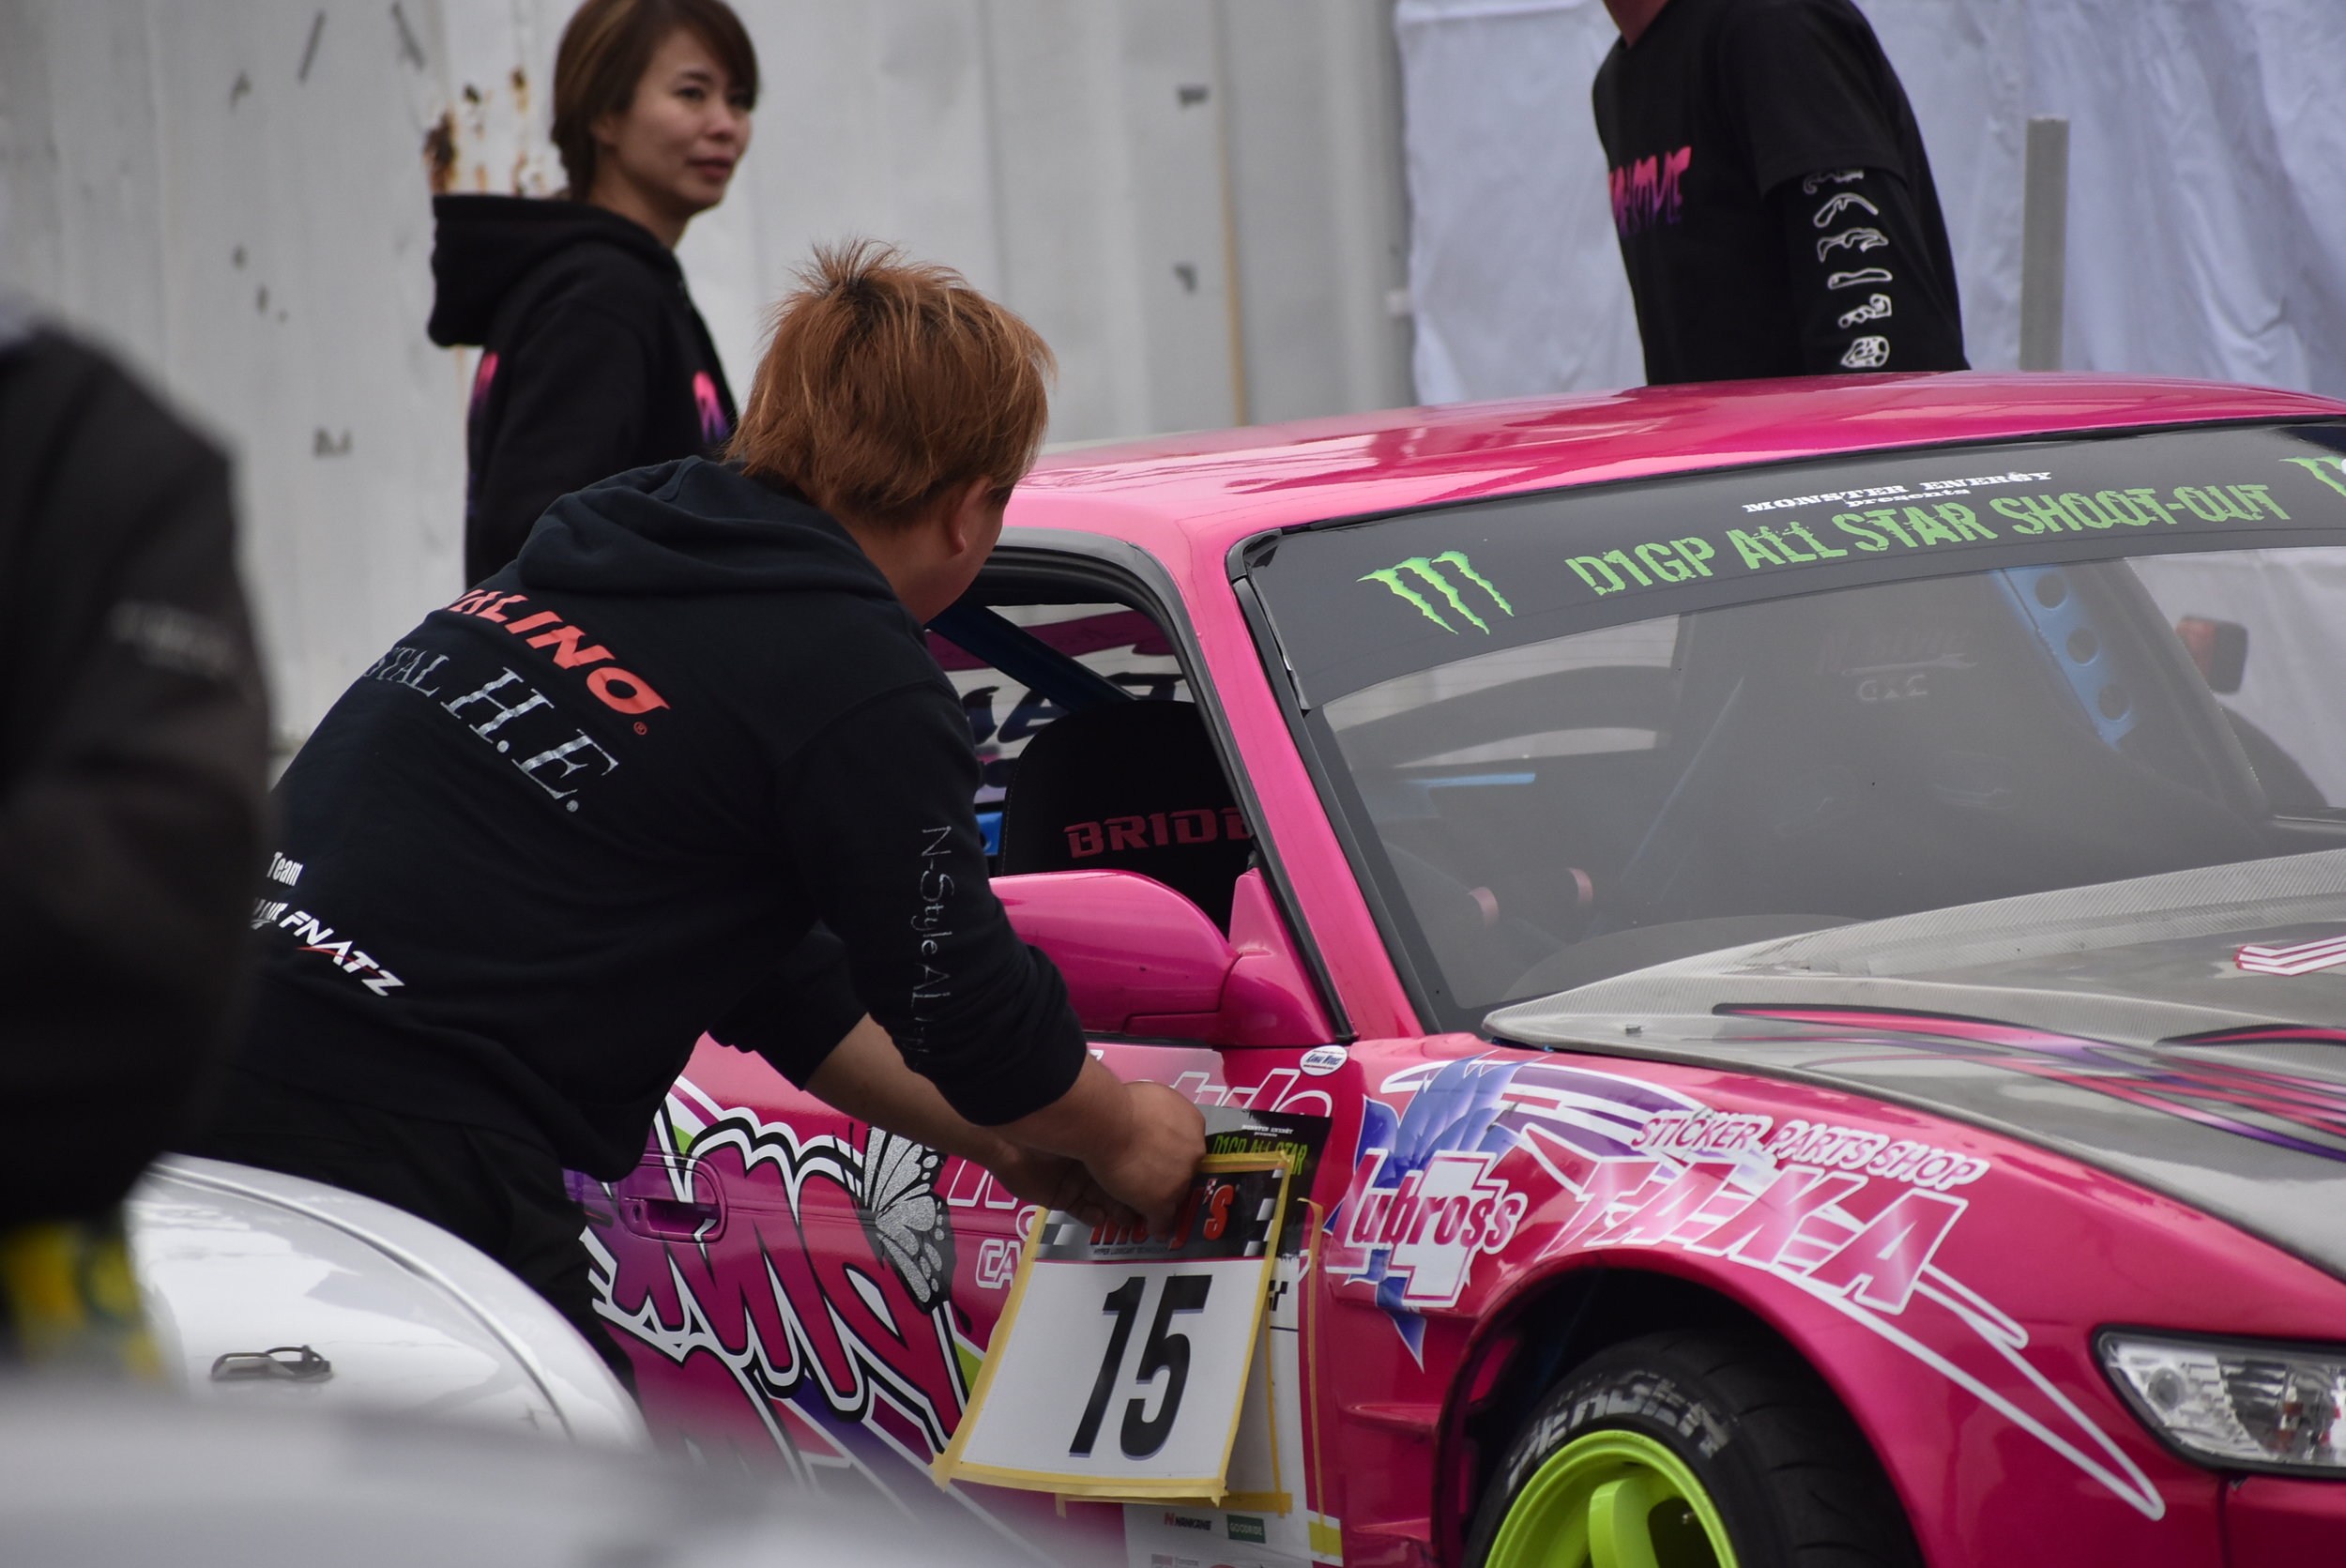 Naoki swapping cars. He runs Miki's Silvia a lot in competition. Strategic plan? One car setup for qualifying, one setup for battle? Interesting to think about, and I'm curious if there's any reason at all behind it.